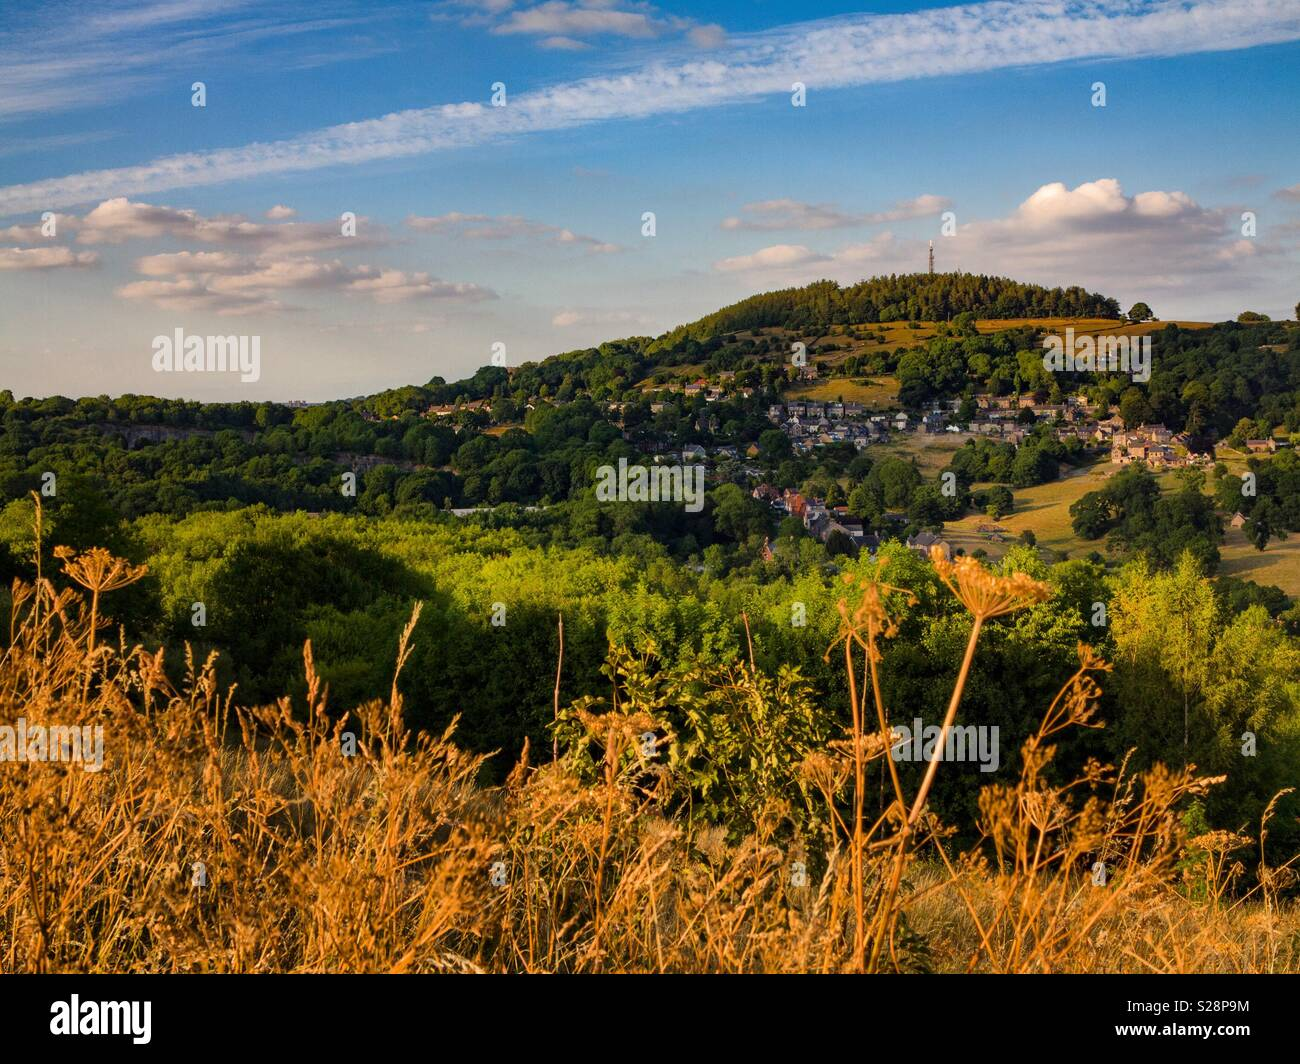 View over the hills near Wirksworth in the Derbyshire Peak District towards Black Rocks England UK Stock Photo